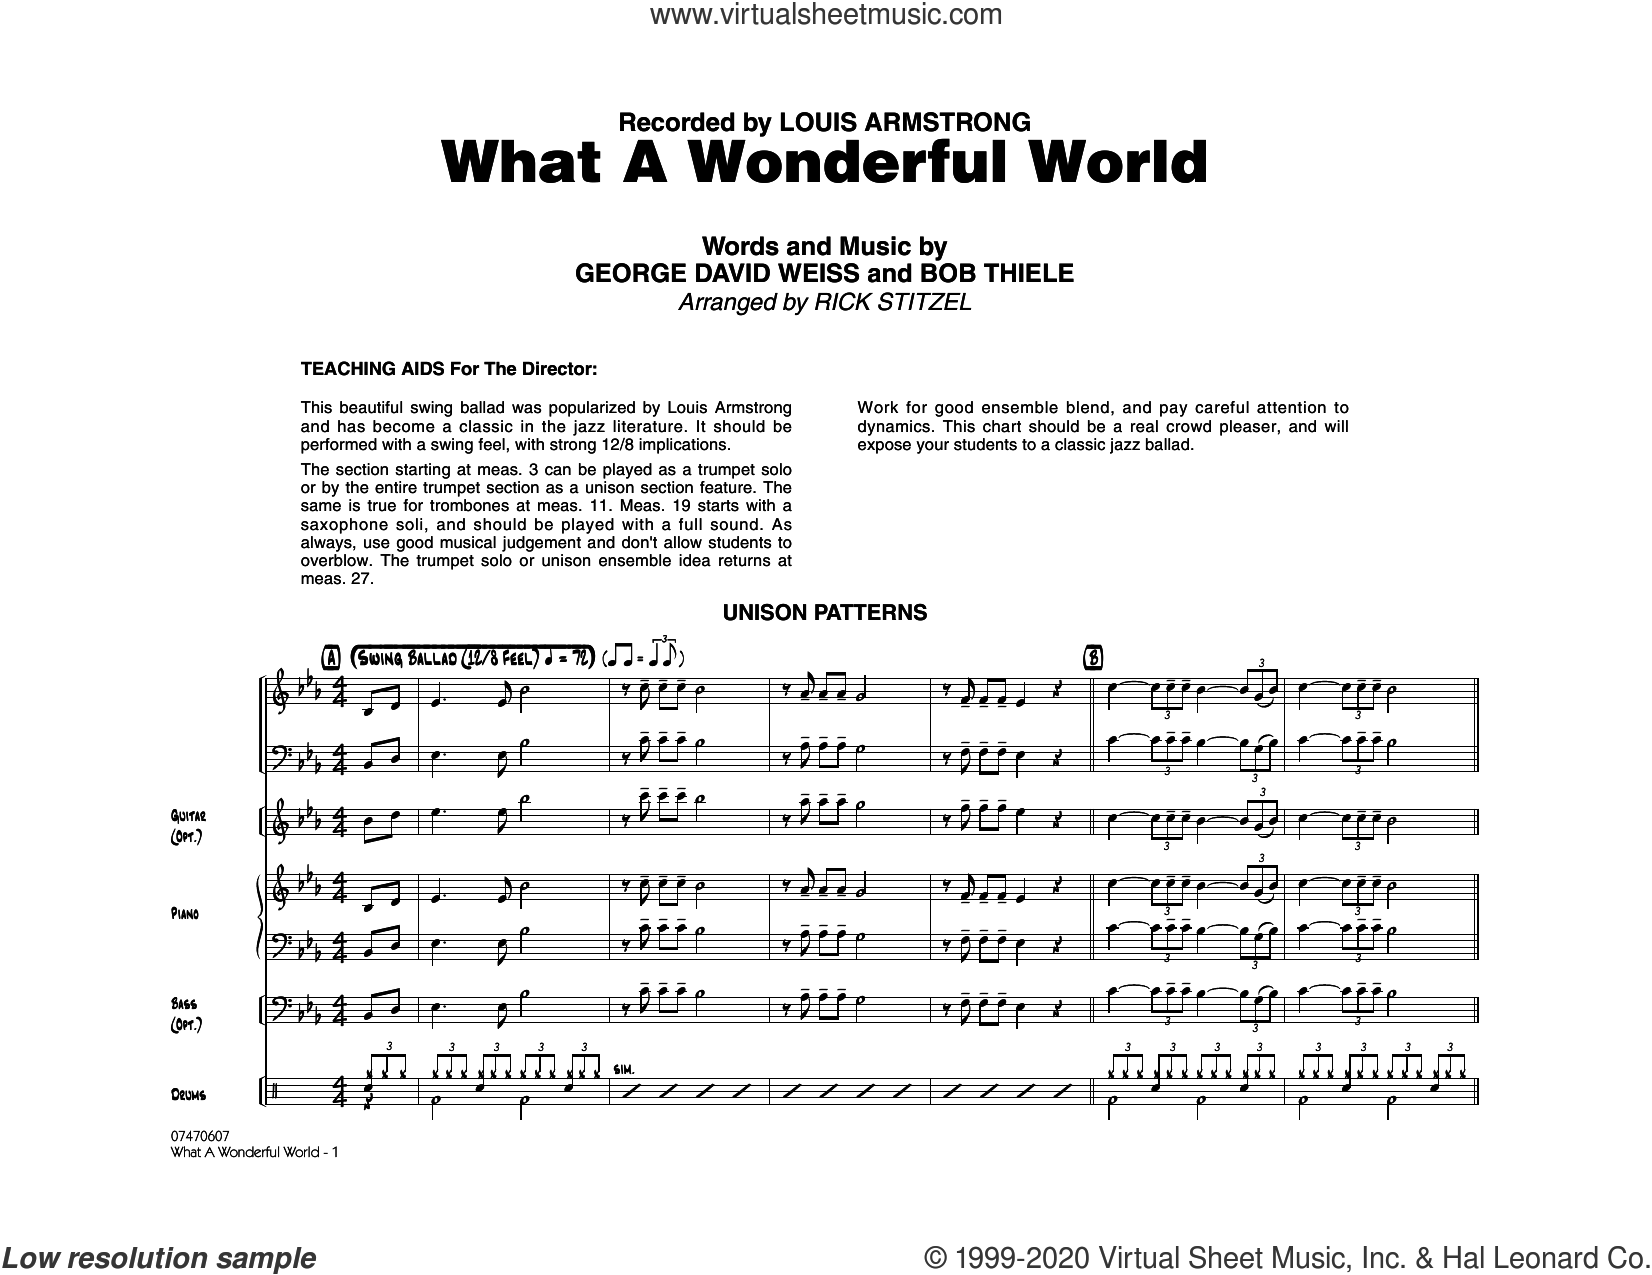 What a Wonderful World (arr. Rick Stitzel) (COMPLETE) sheet music for jazz band by Louis Armstrong, Bob Thiele, George David Weiss and Rick Stitzel, intermediate skill level